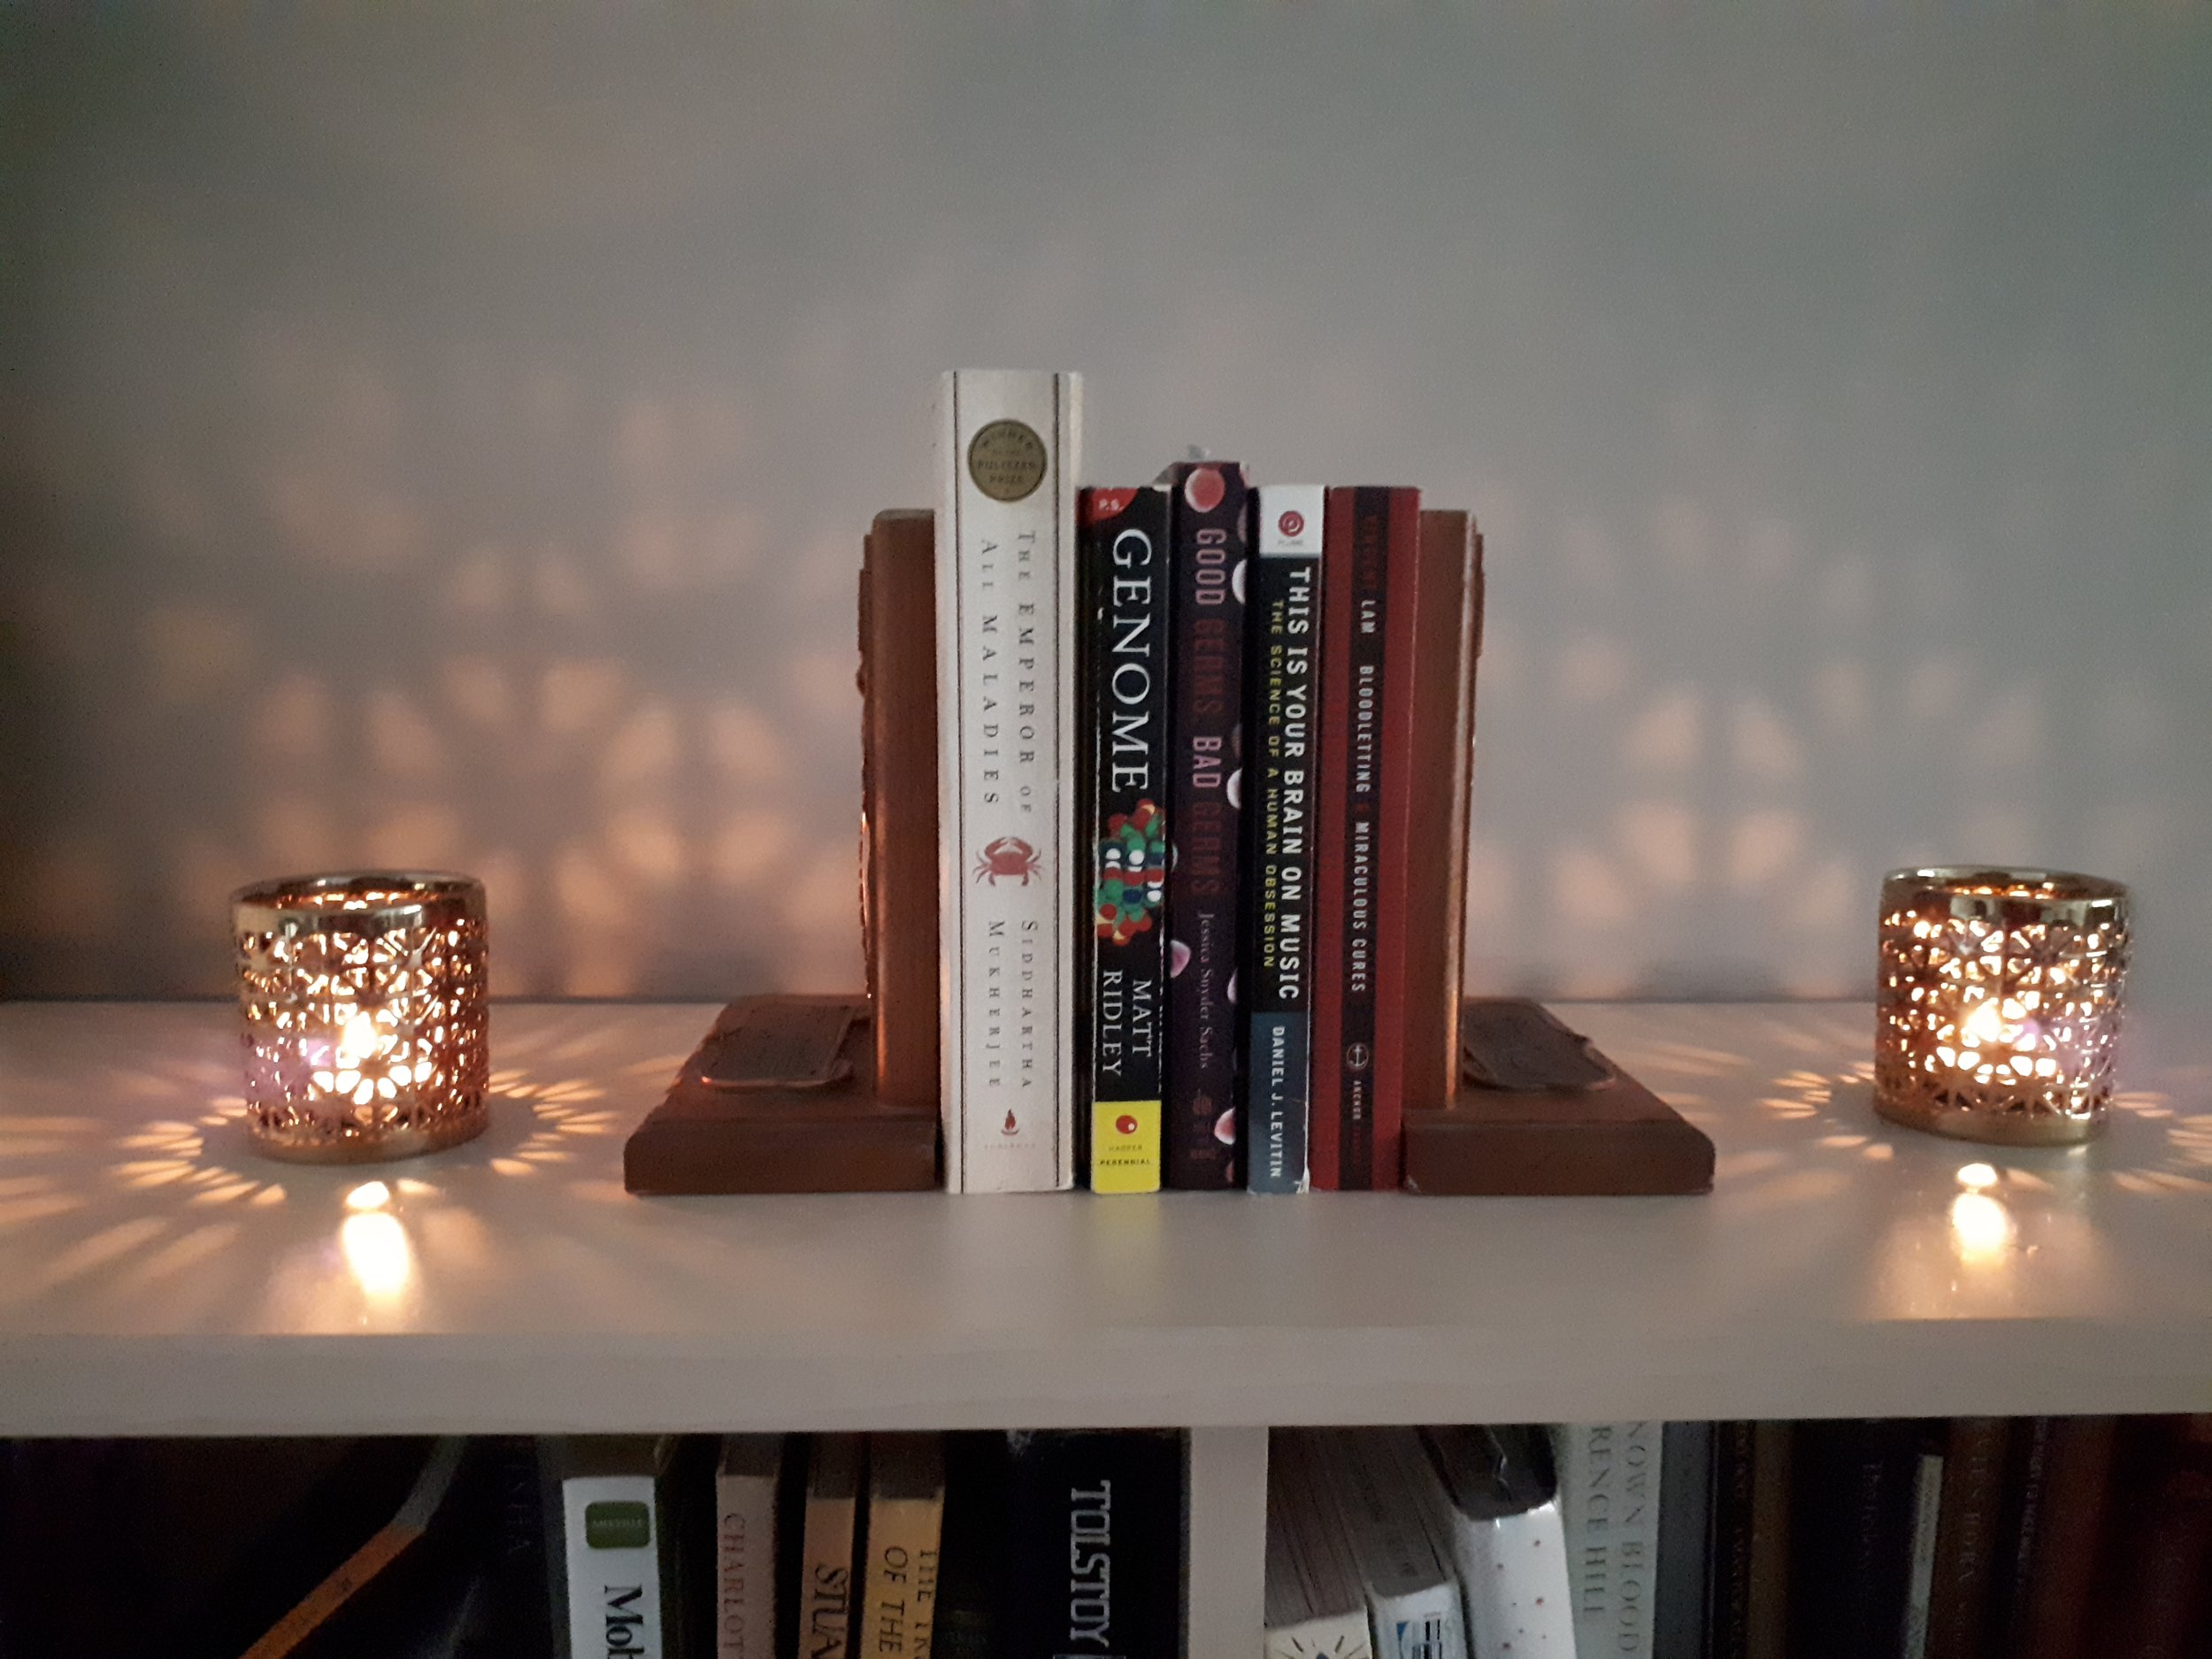 Lighting and candles can also be decorative elements, and placed to help frame things - like books! But not too close to the candles, of course.